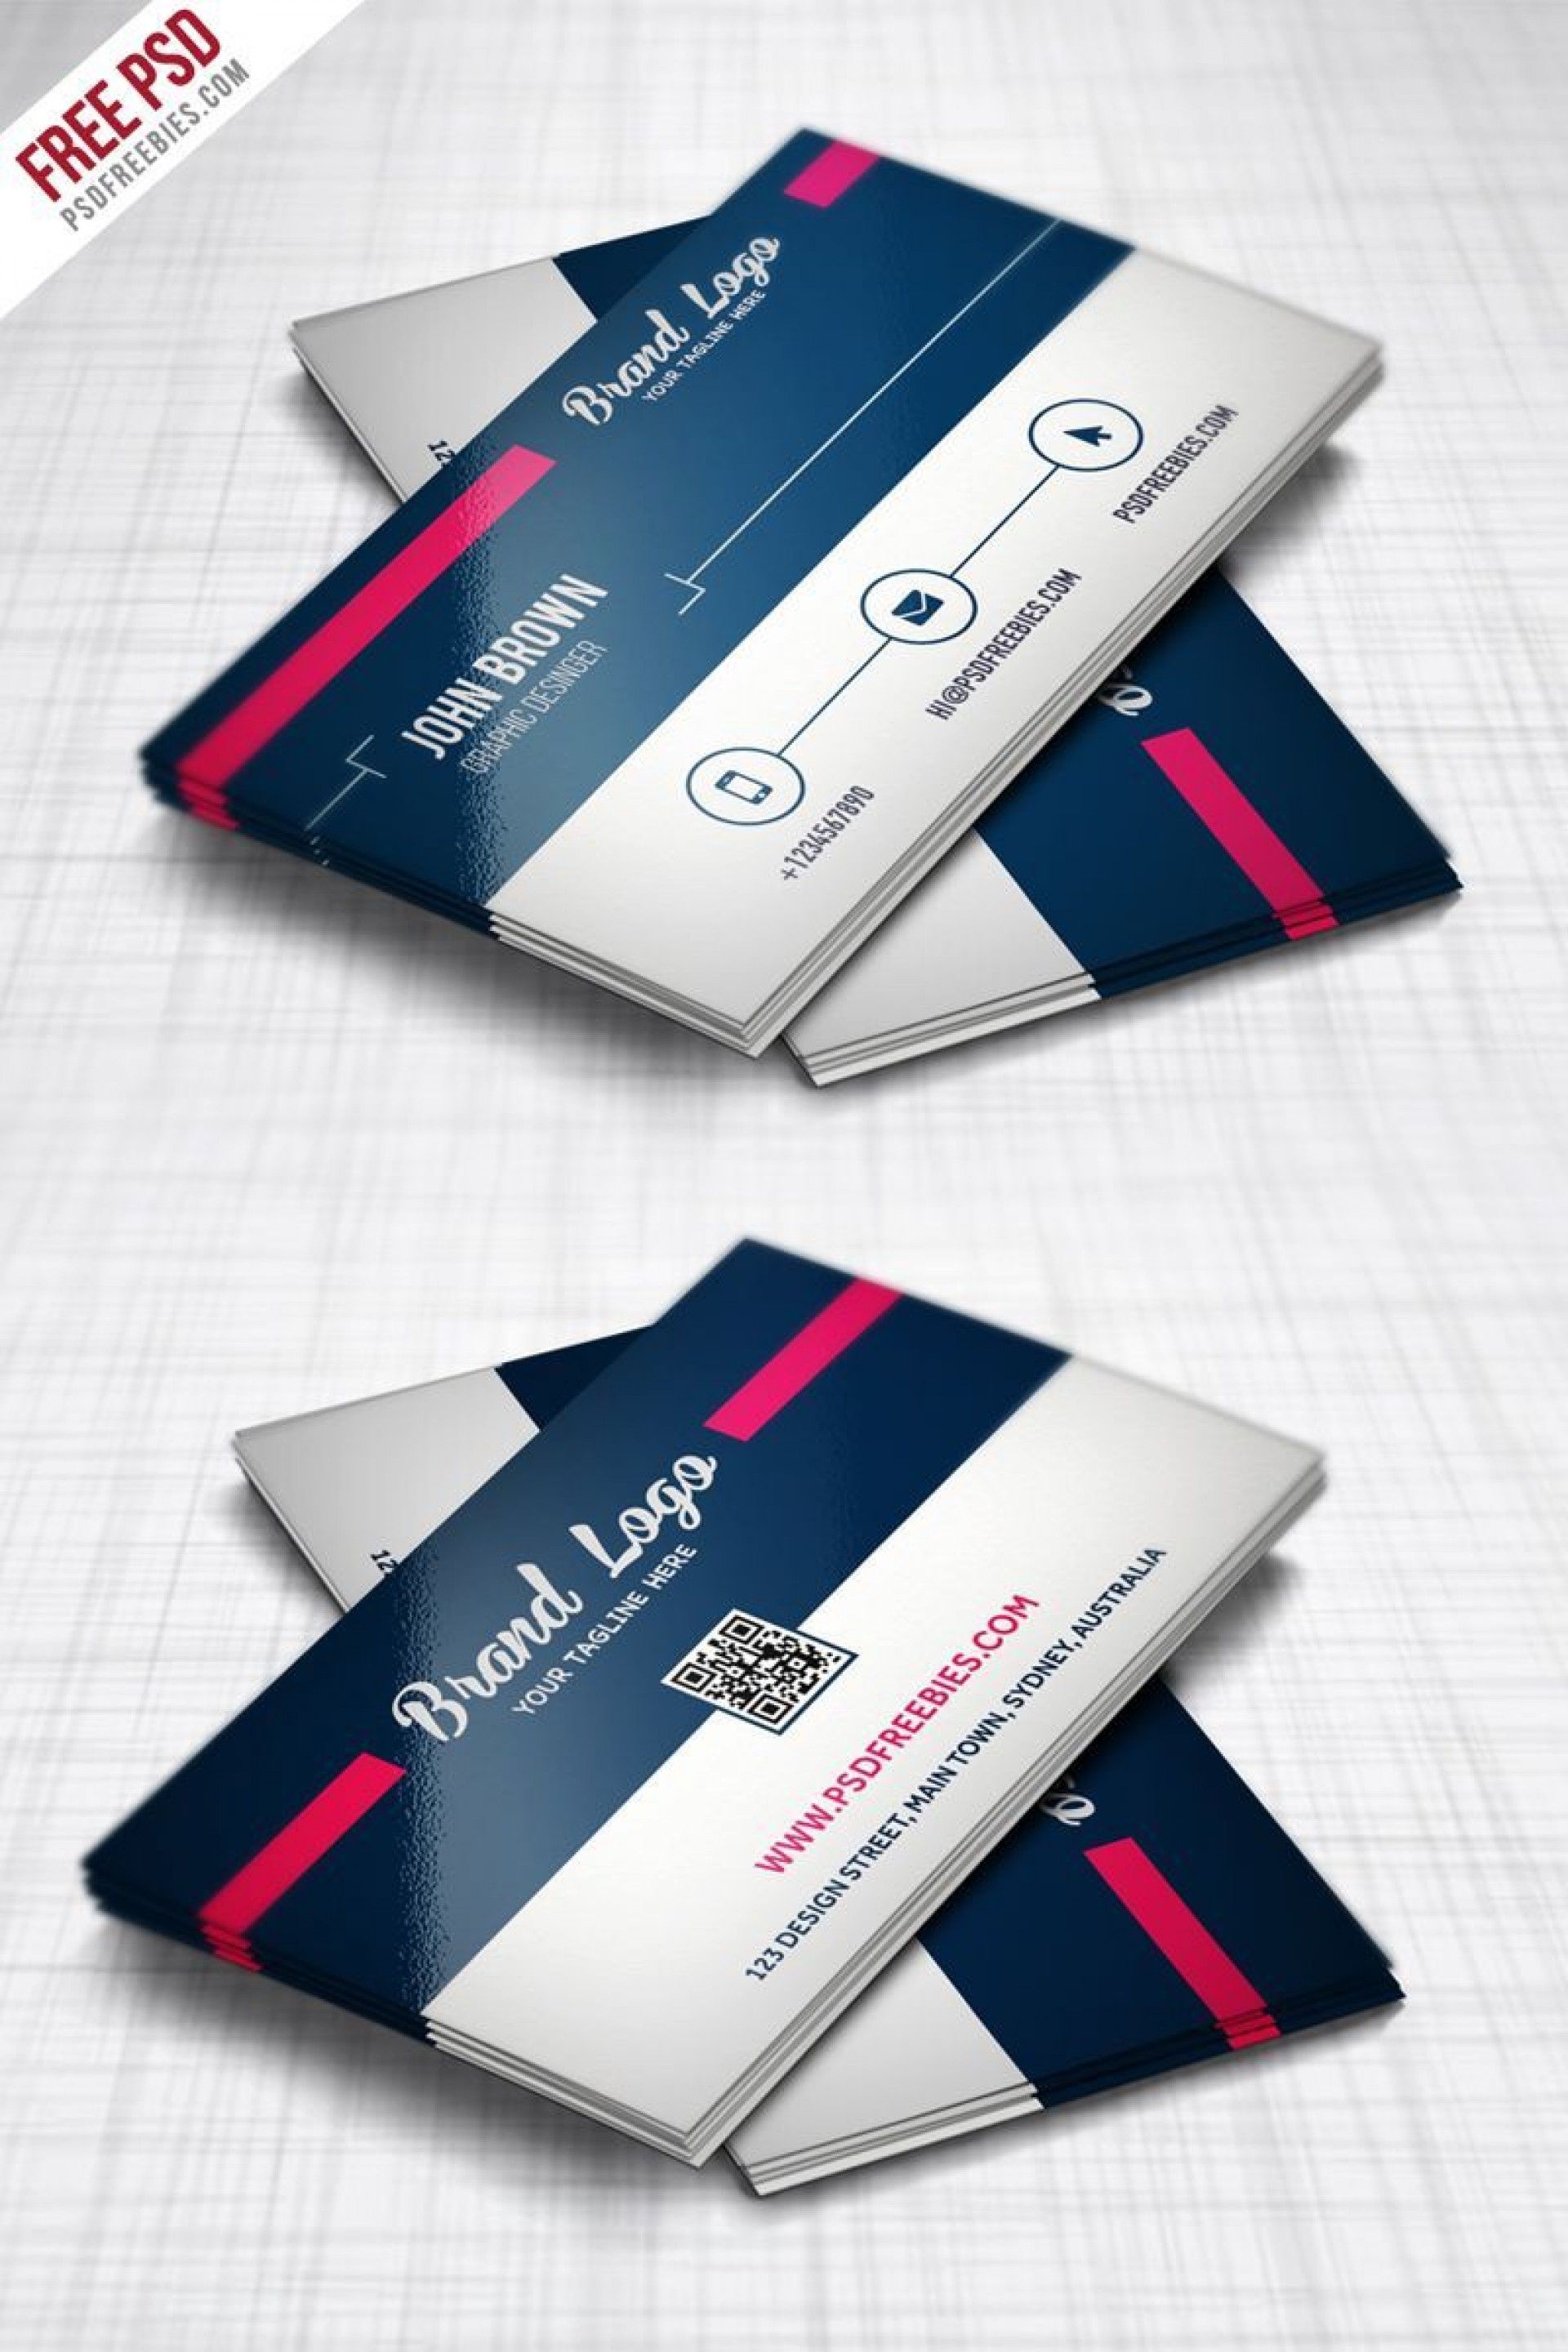 007 Exceptional Free Adobe Photoshop Busines Card Template Idea  Templates Download1920